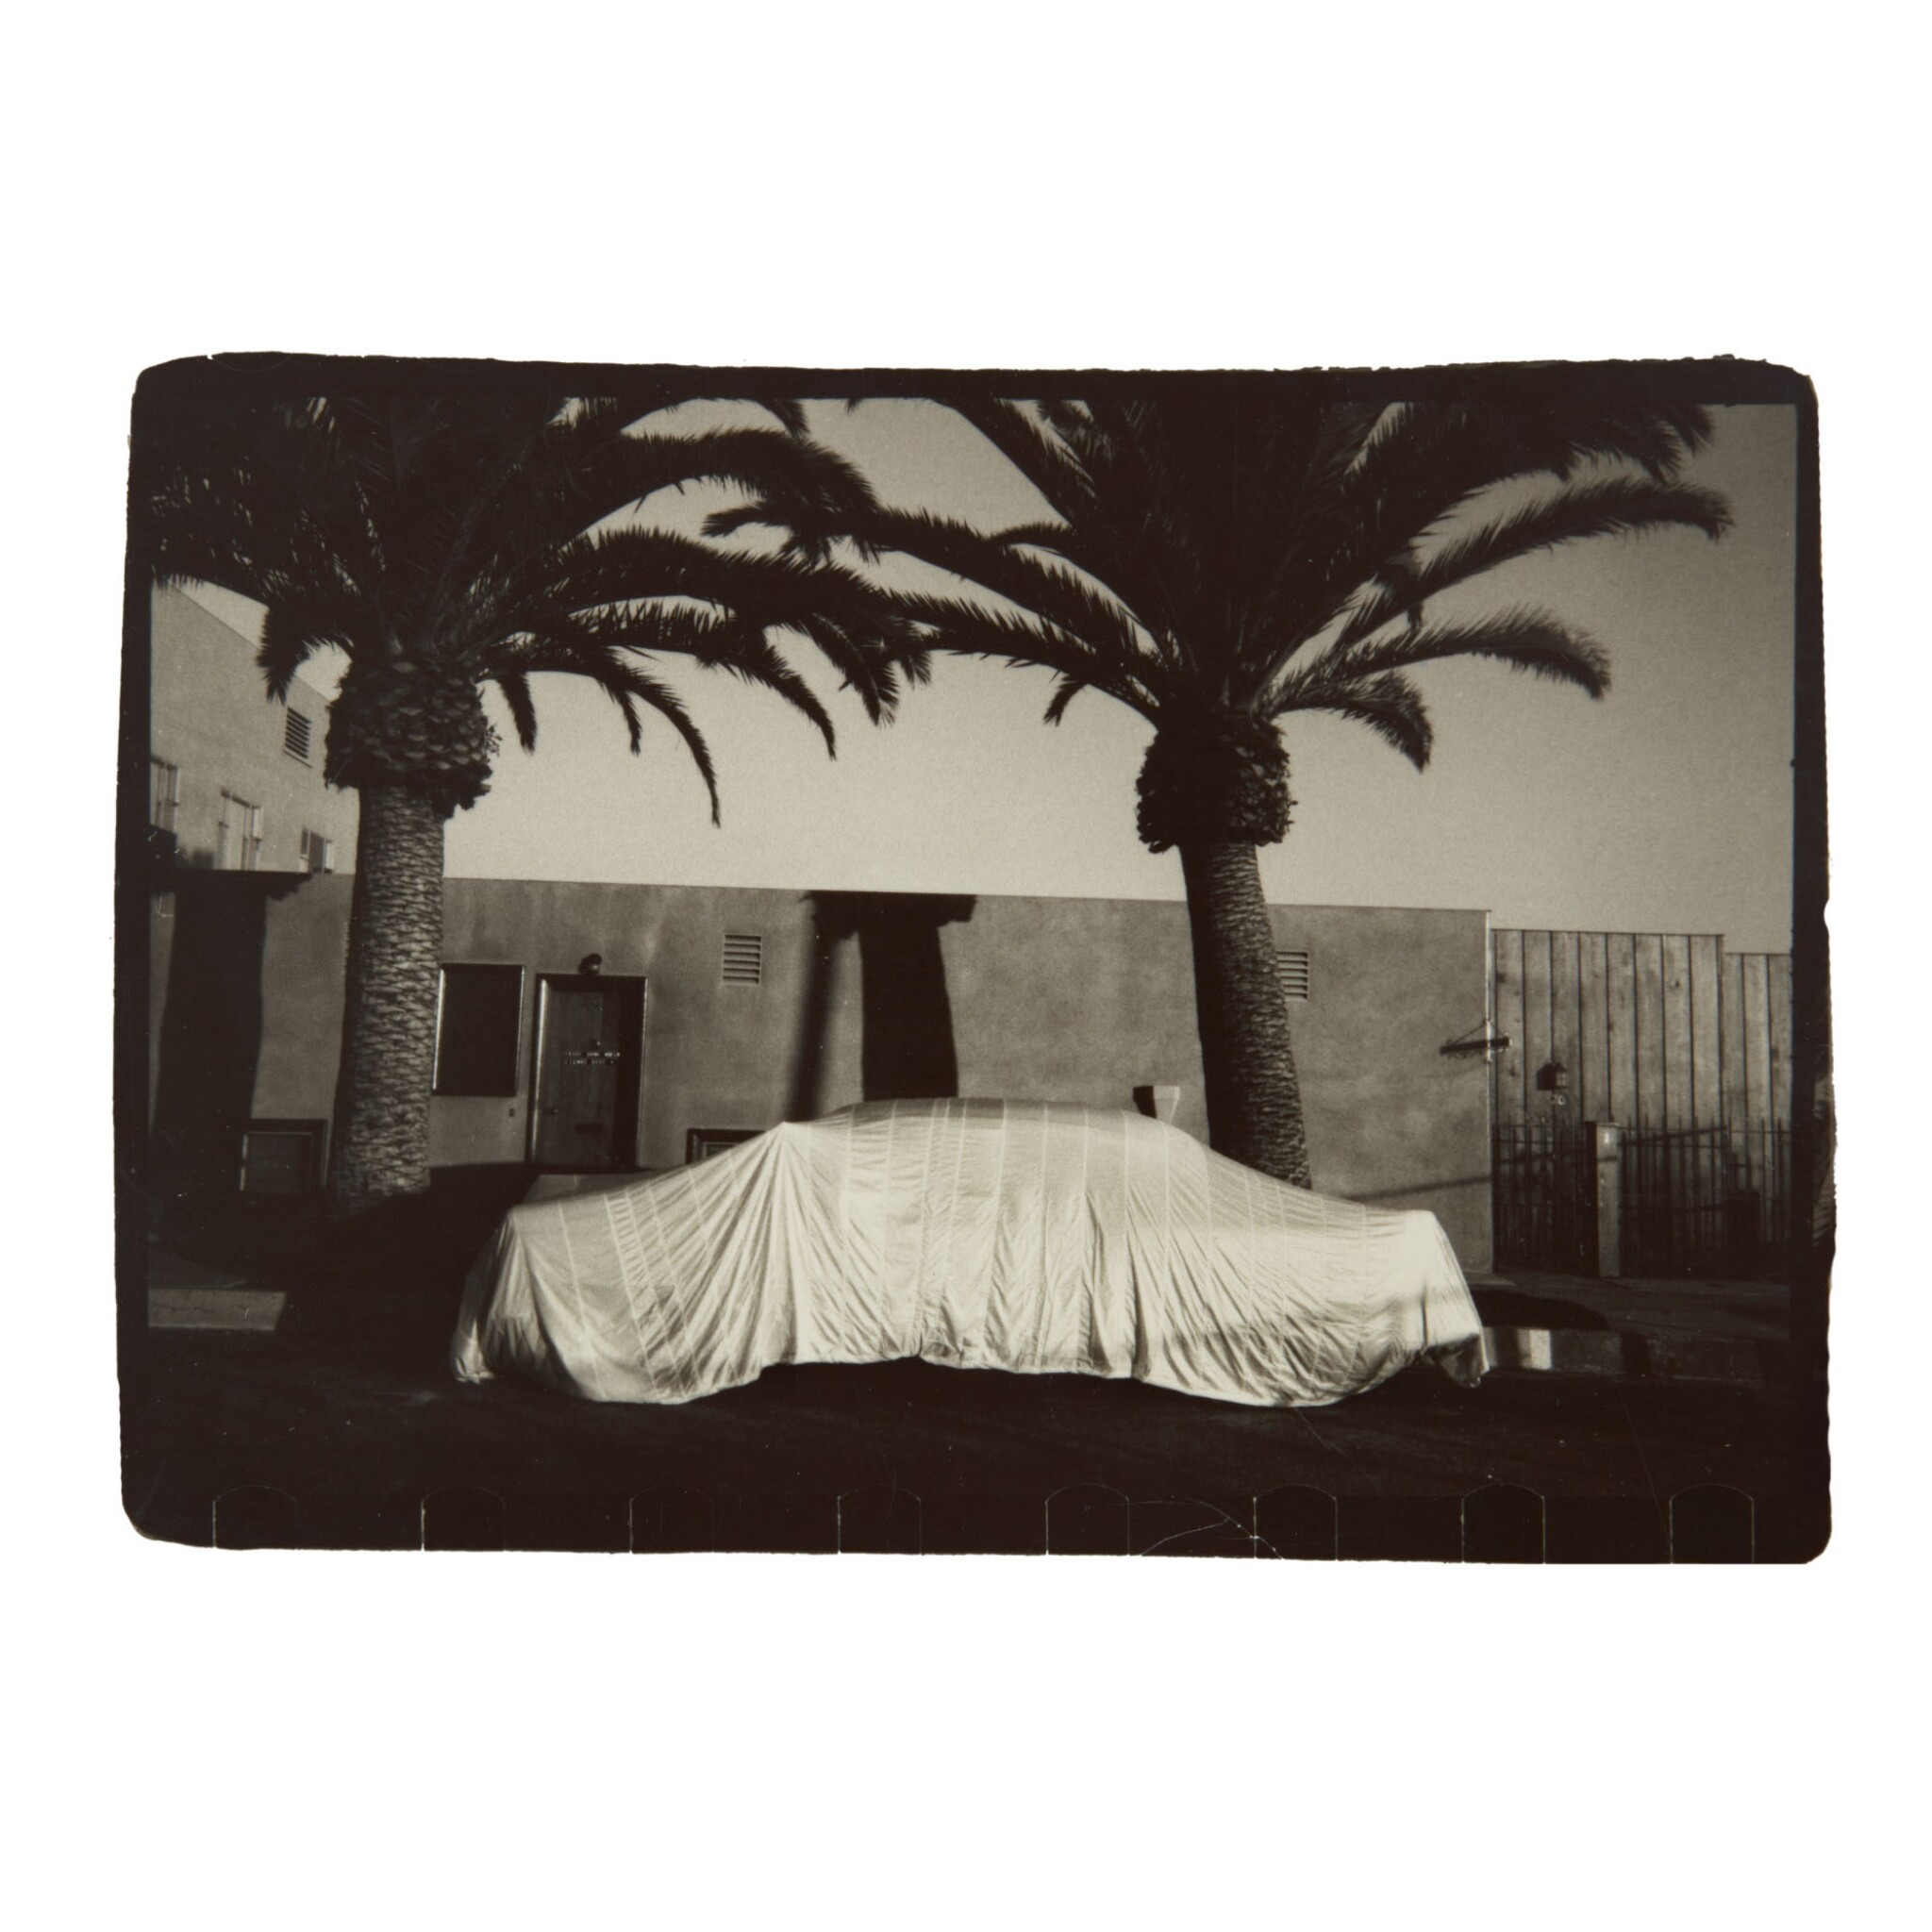 ROBERT FRANK  | 'LONG BEACH, CALIF.' (COVERED CAR)